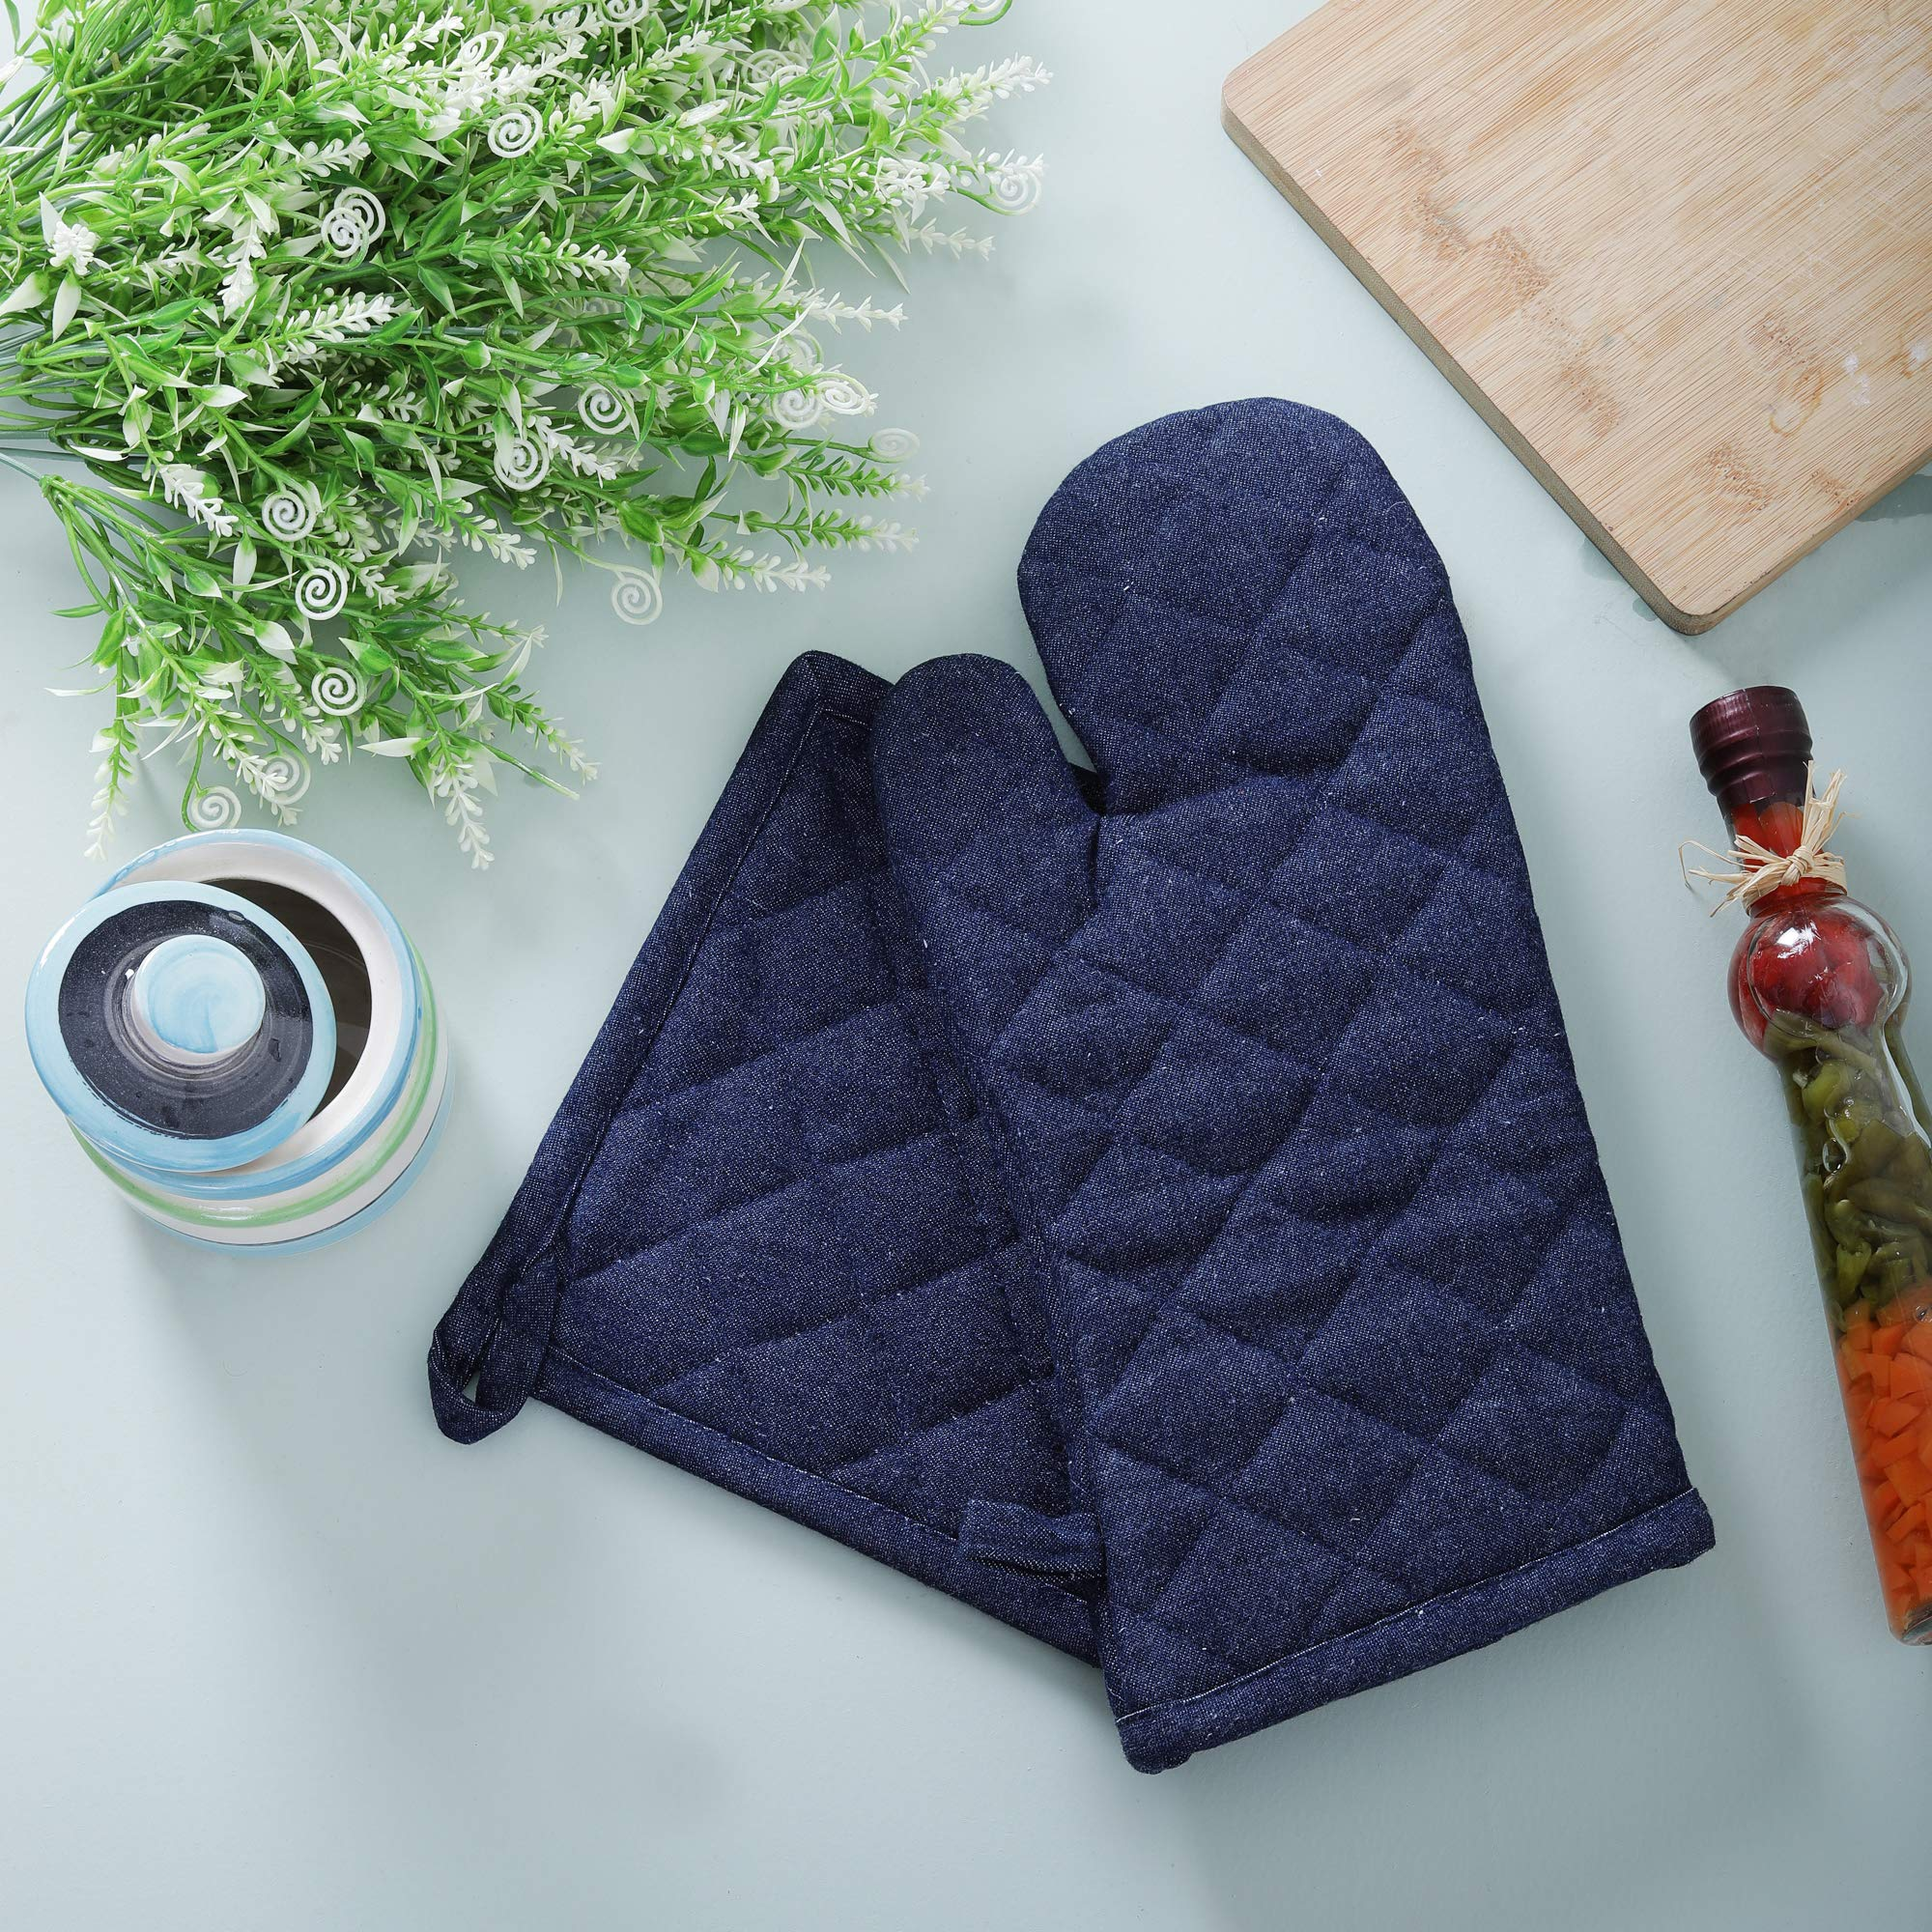 Denim Oven Mitt & Pot Holder Set, Pack of 2, 100% Cotton, Denim Blue, Advanced Heat Resistant Oven Mitt, Non-Slip Textured Grip Pot Holders